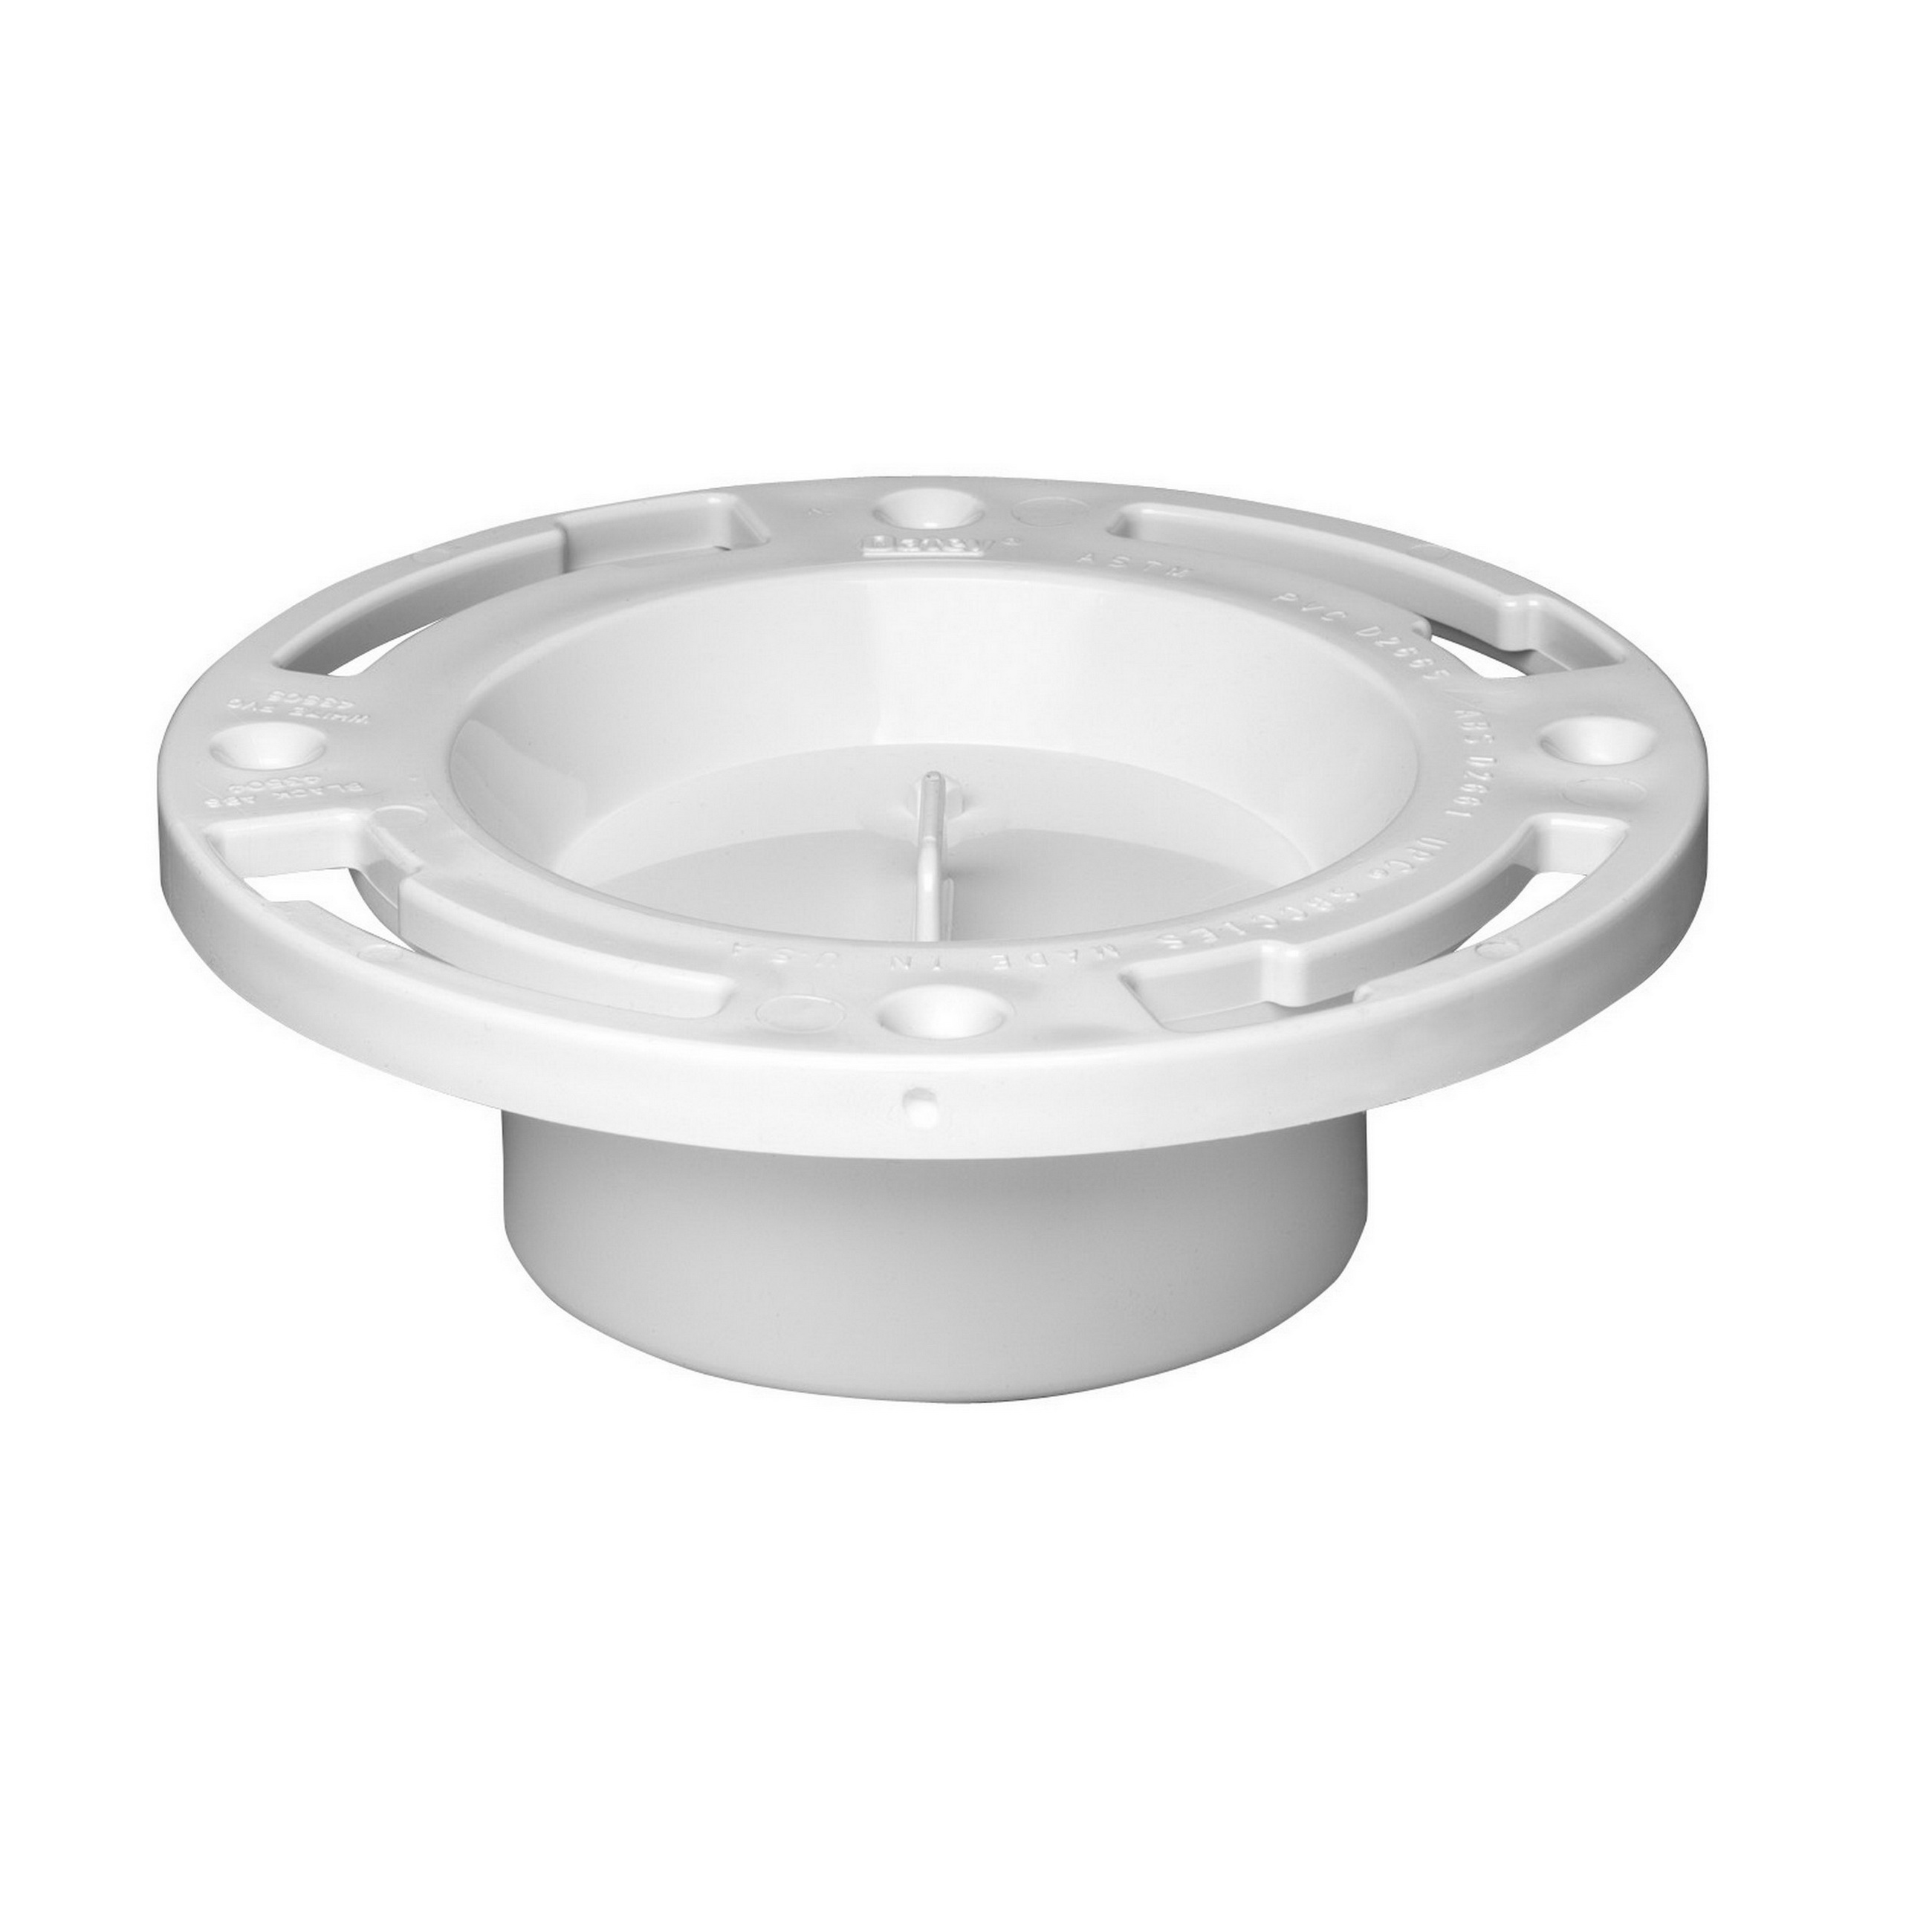 Oatey® 43507 White PVC SCH 40 Level Fit Closet Flange with Plastic Ring, 3 in